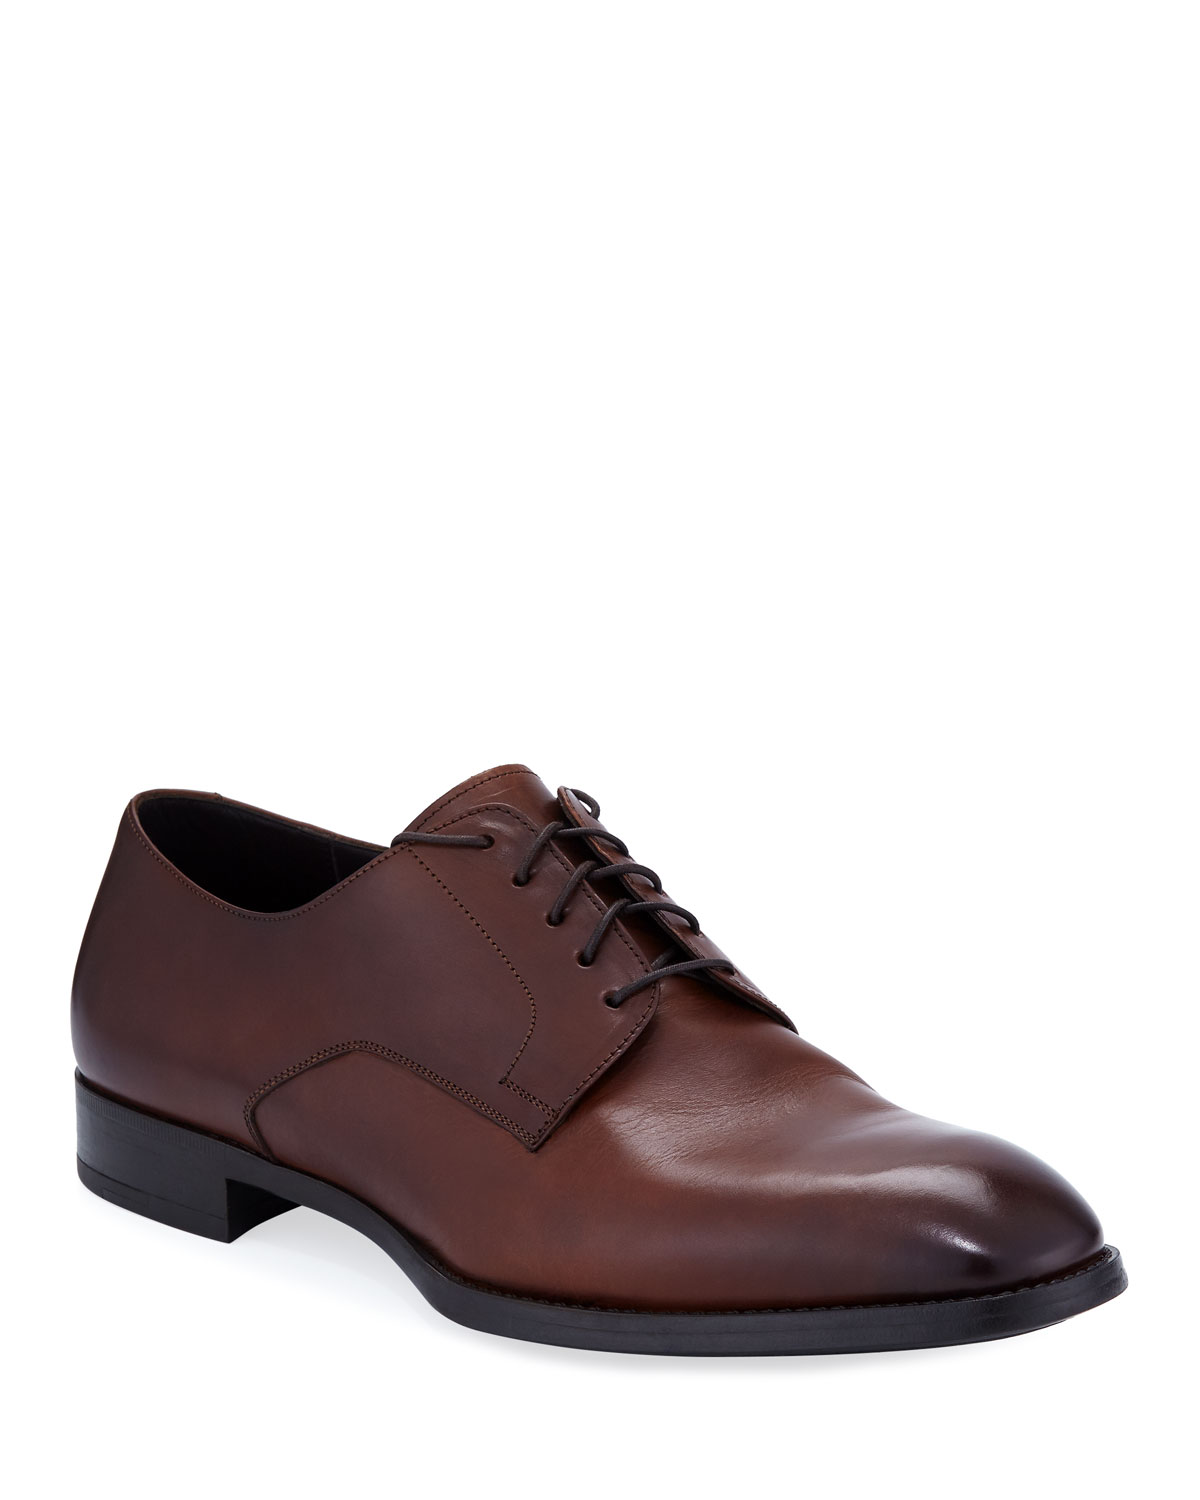 Giorgio Armani  Men's Leather Derby Shoes